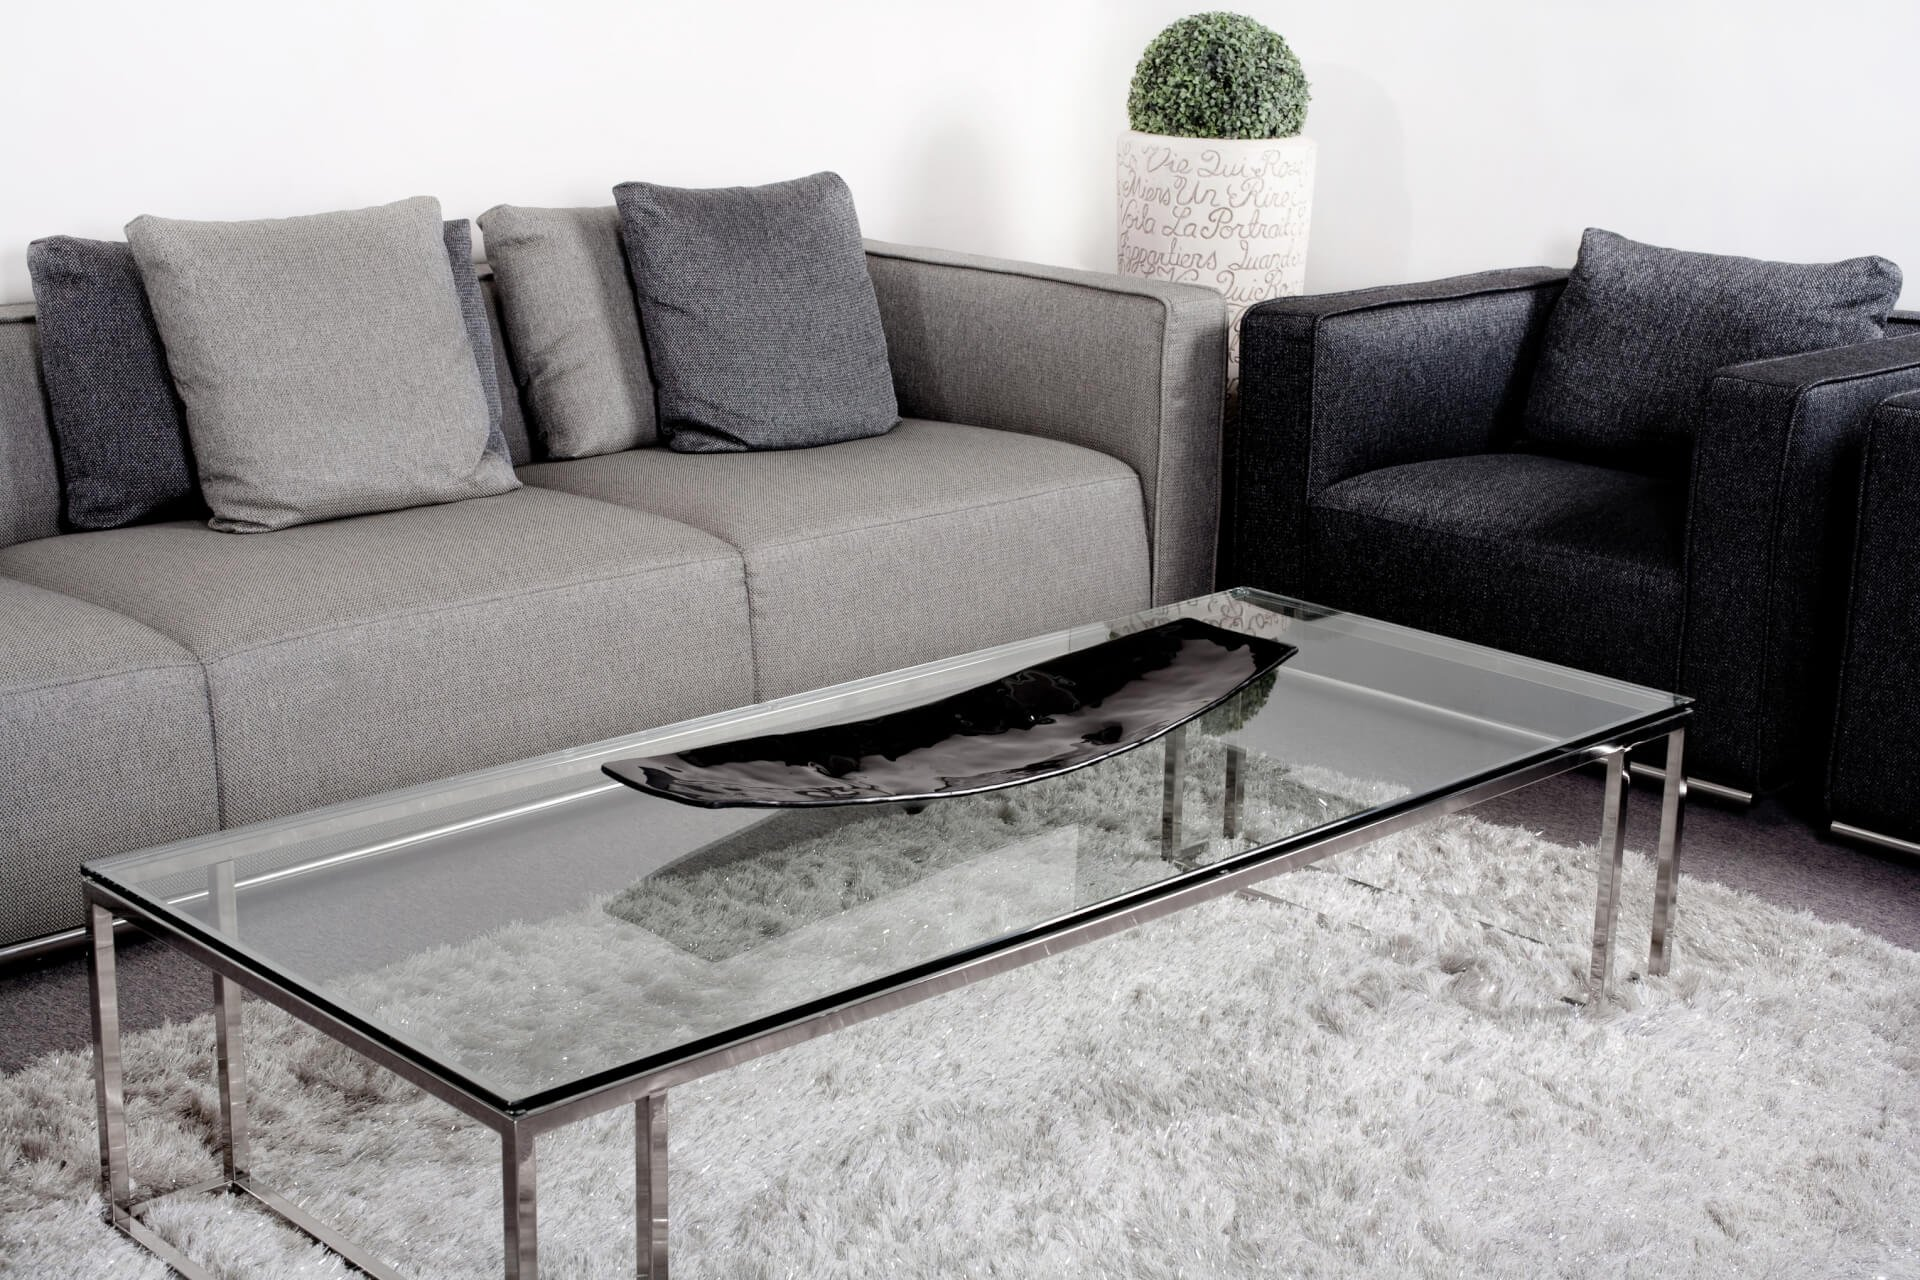 Aside From Being An Additional Protection For Your Furniture Glass Tabletops Can Make Table Appear